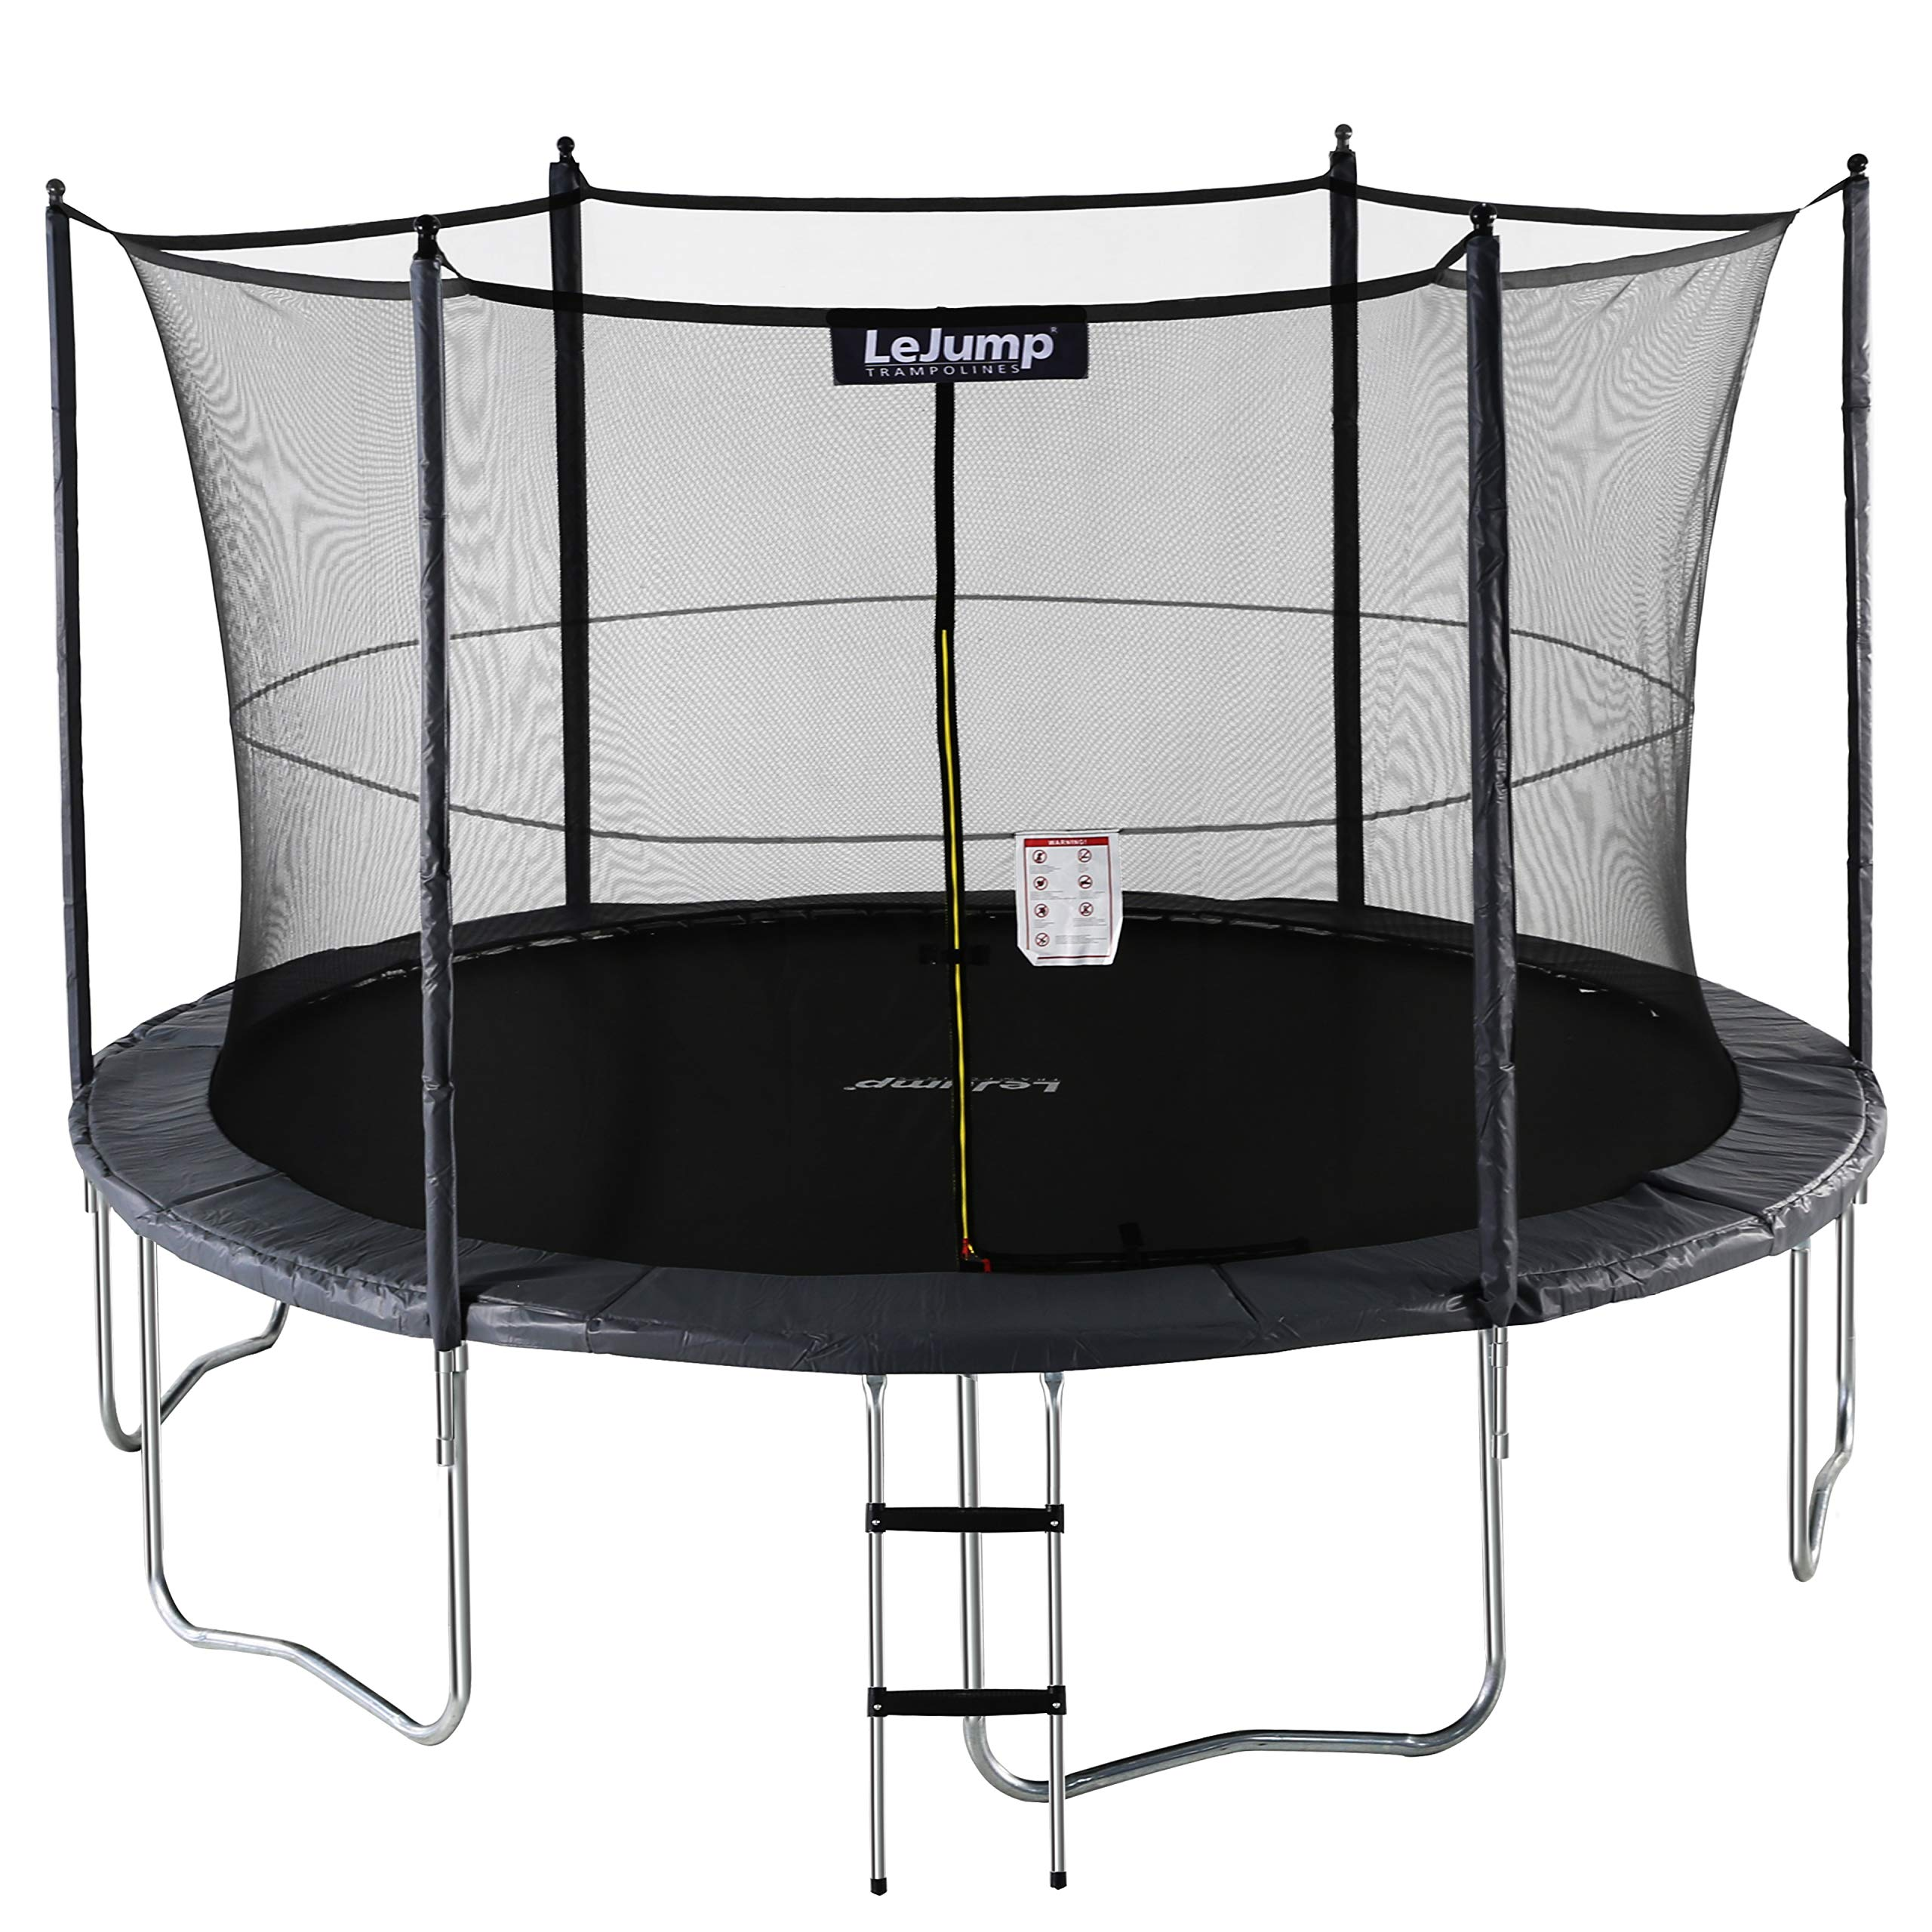 Lejump Trampolines 12ft with Safety Pad & Enclosure & Net & Ladder & Free Socks & Optional Basketball Hoop for Kids TUV Certified (Gray, 12FT)